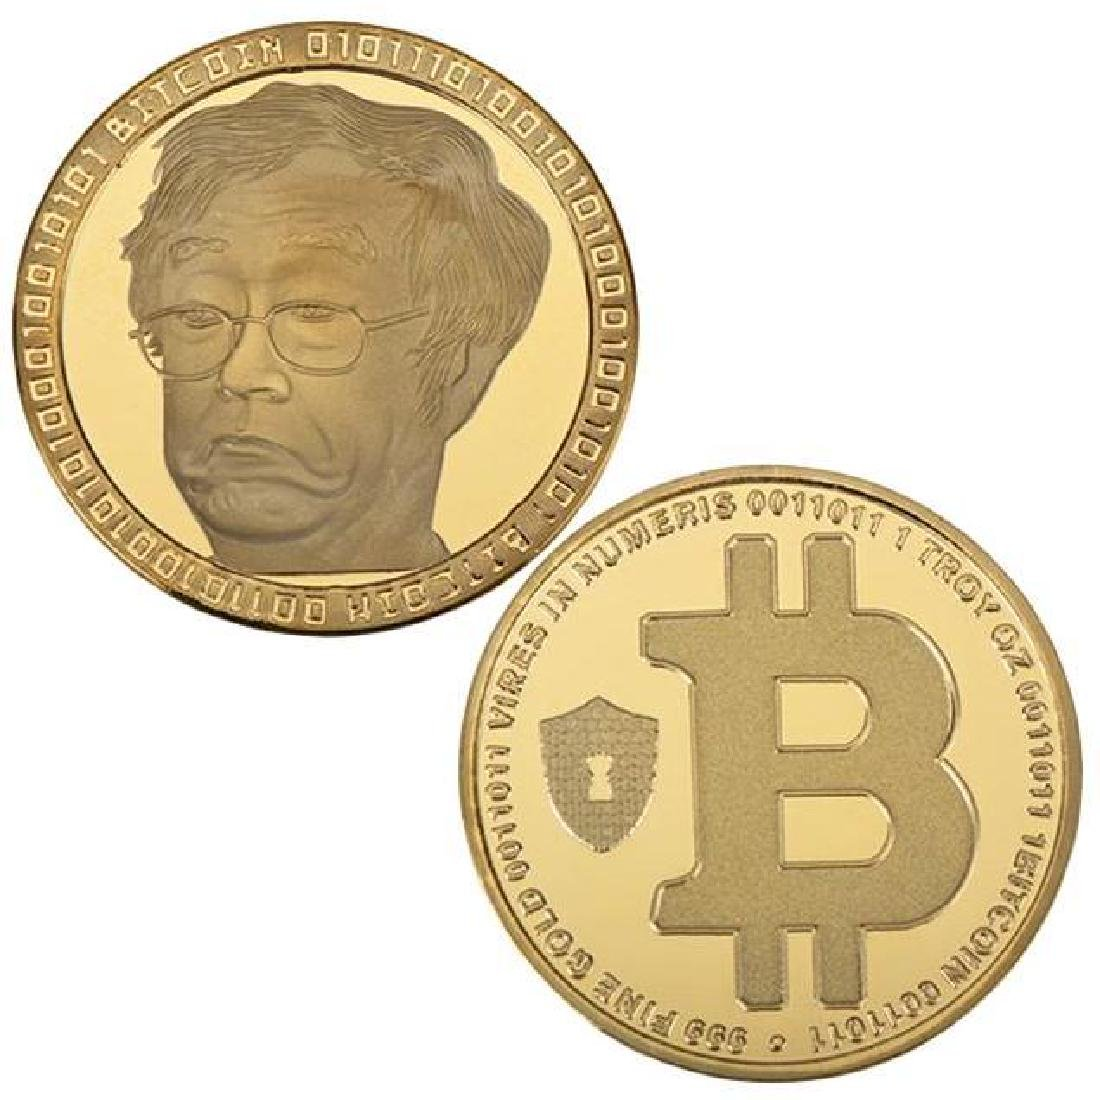 Bitcoin Inventor Gold Clad Commemorative Coin